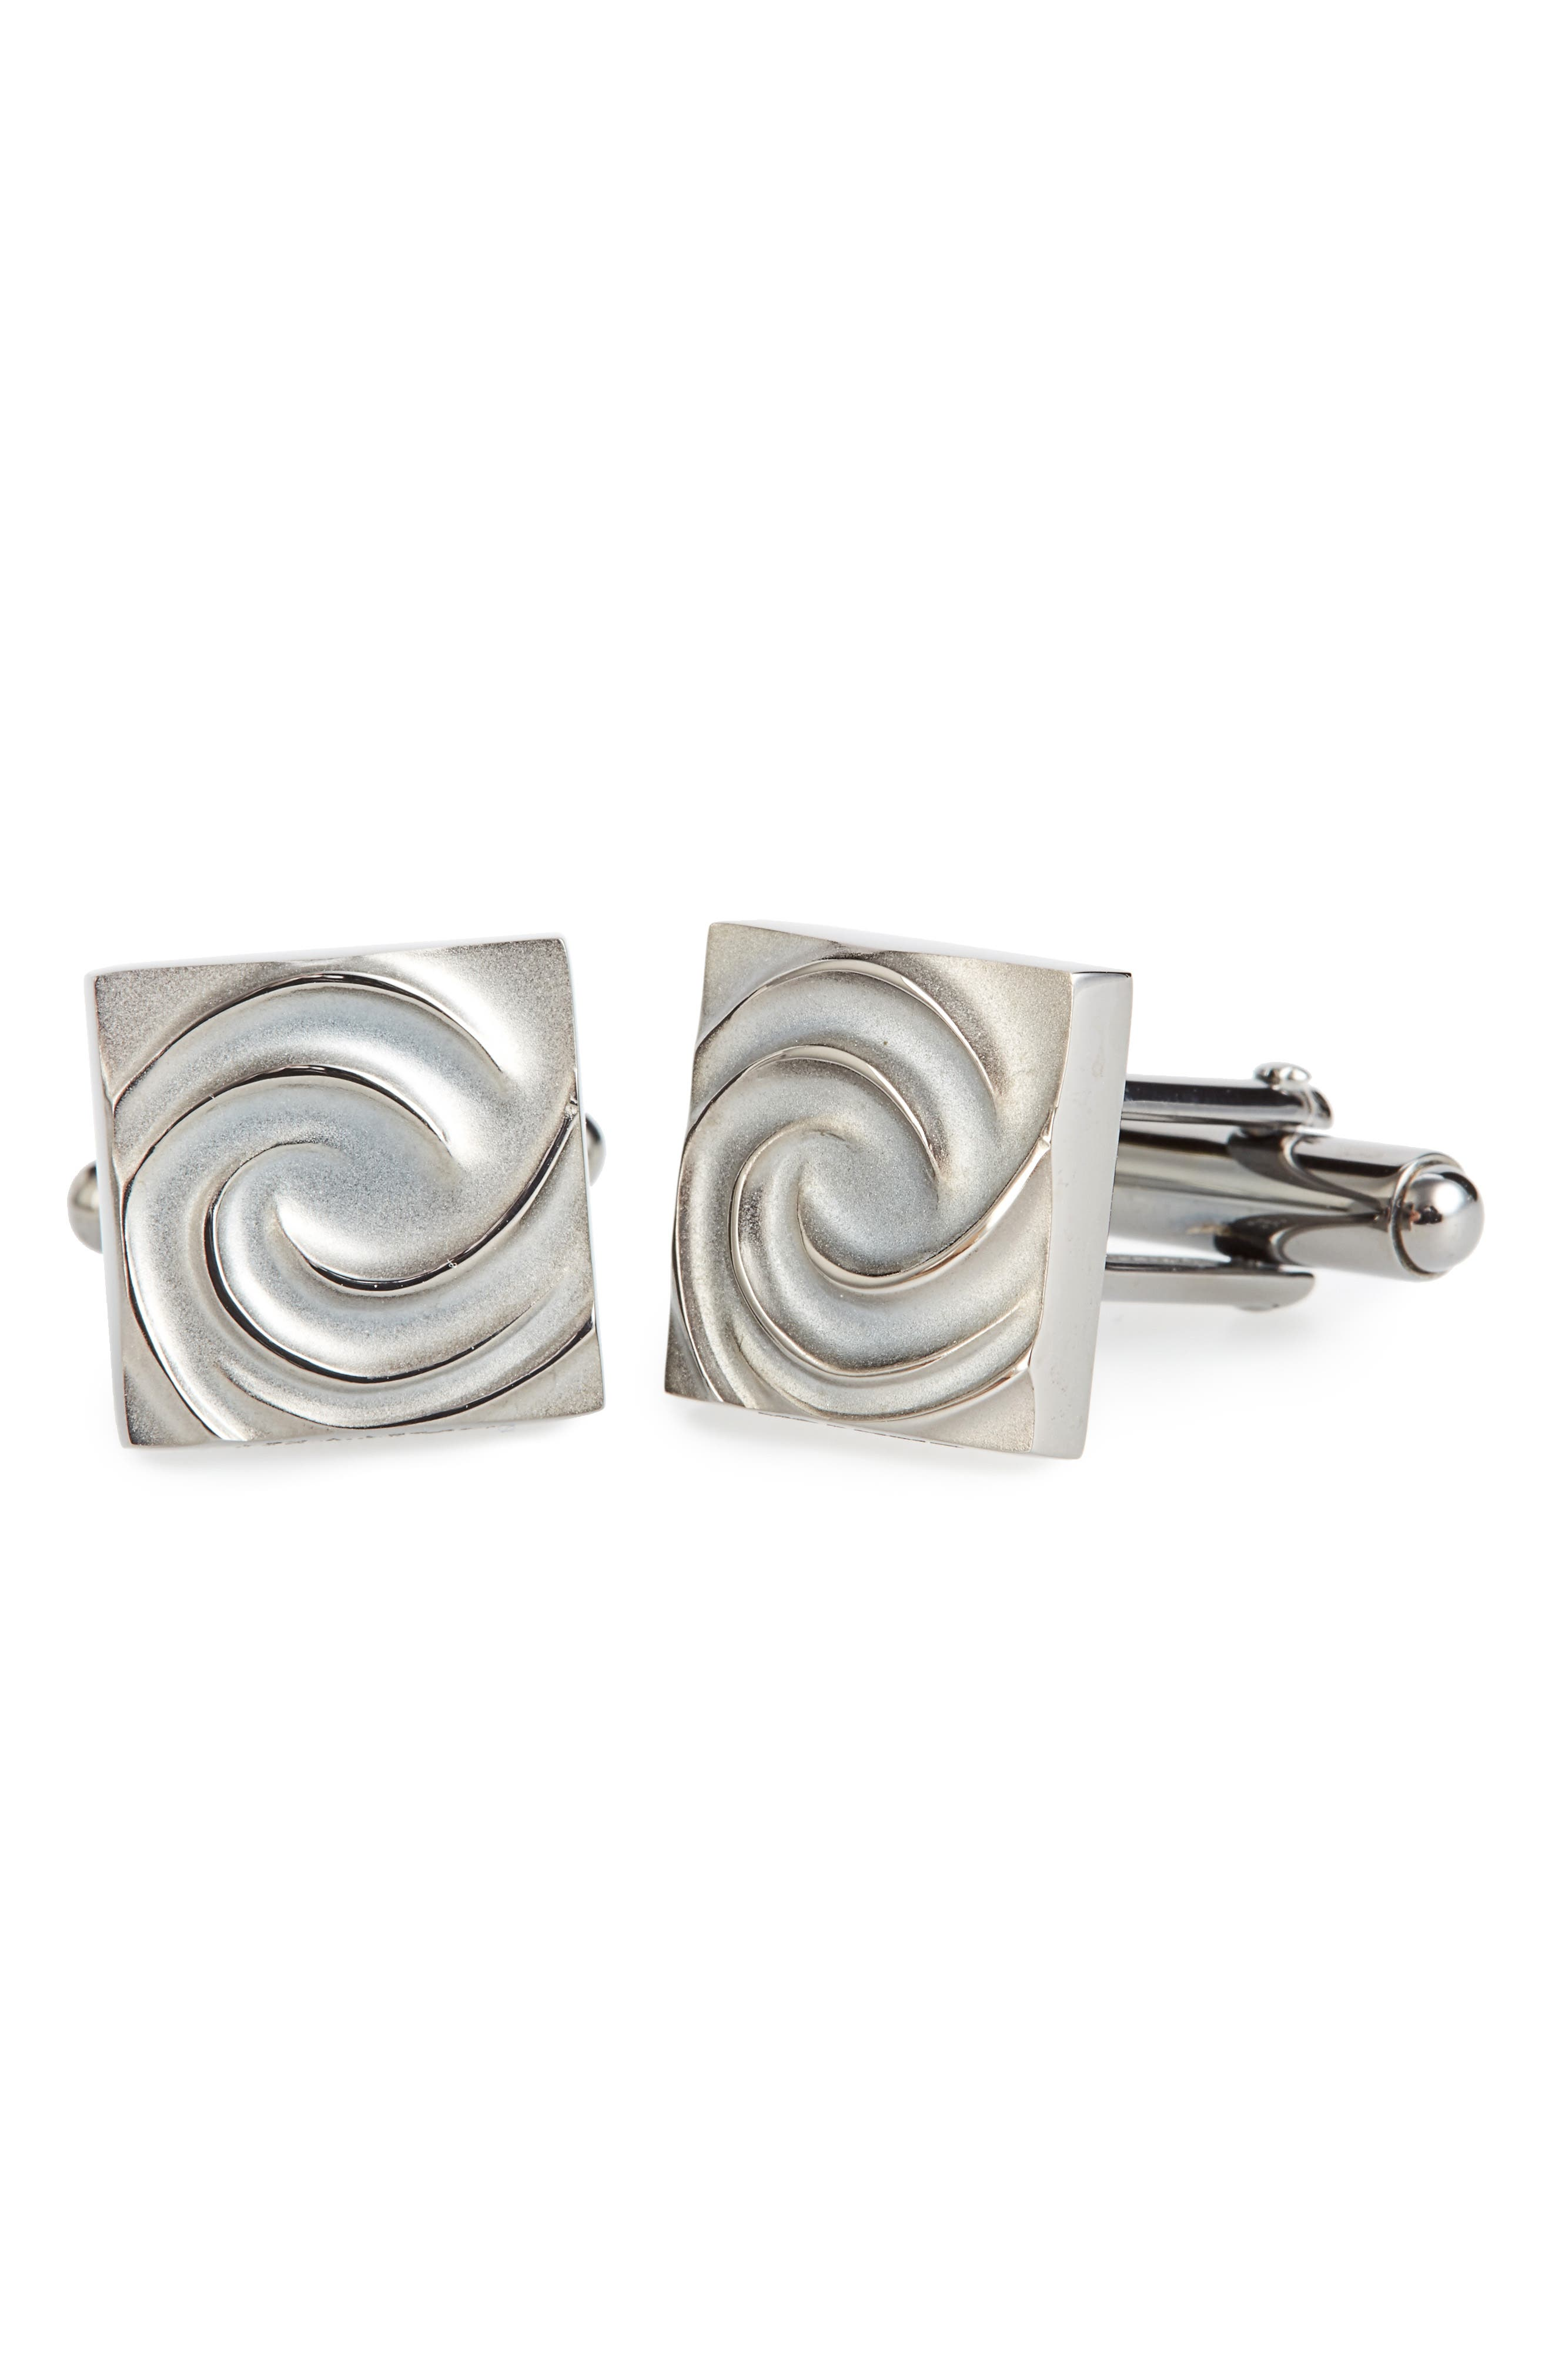 Swirl Square Cuff Links,                             Main thumbnail 1, color,                             SILVER